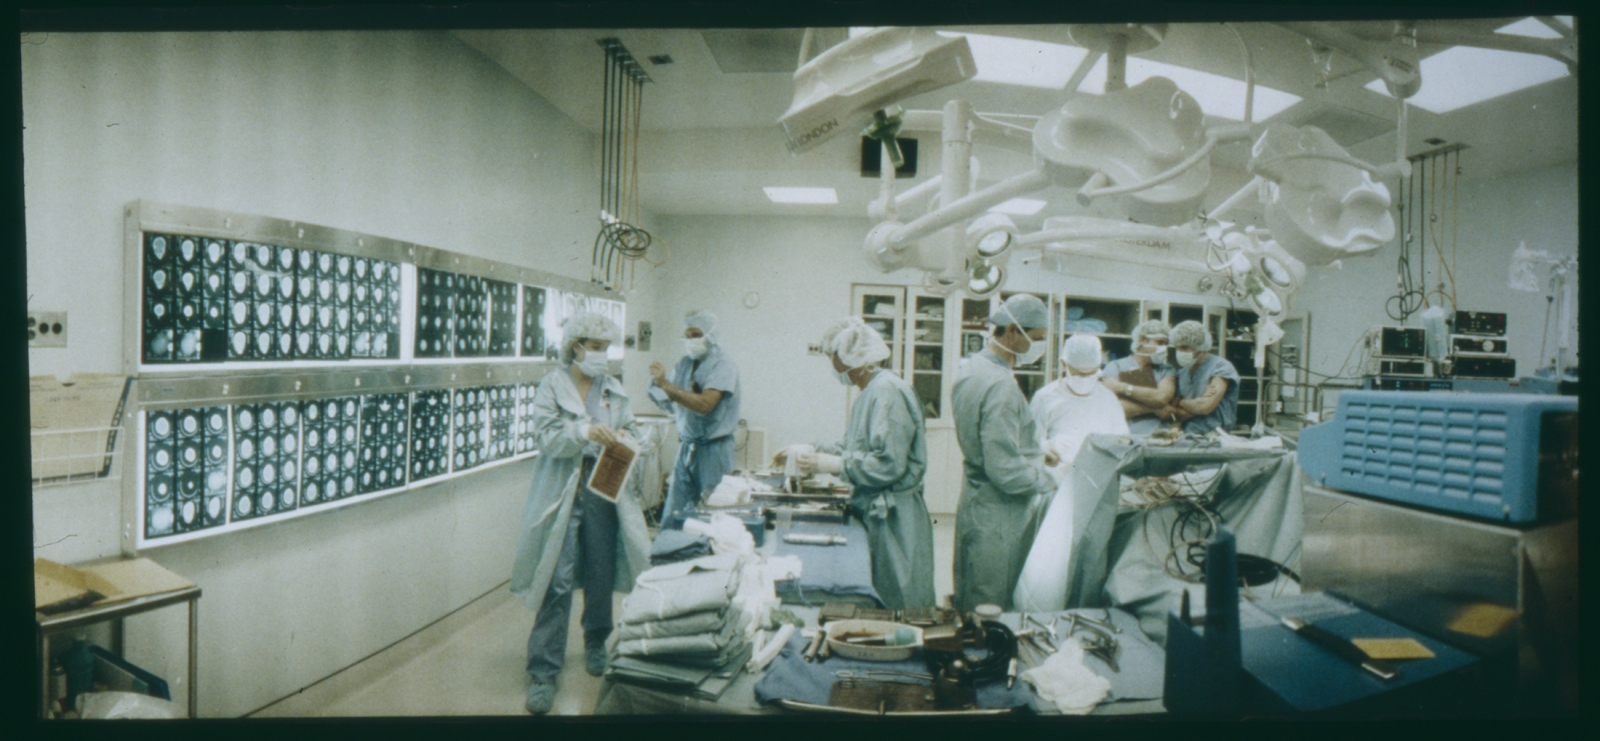 Two teams of surgeons and a ten-hour marathon operation.